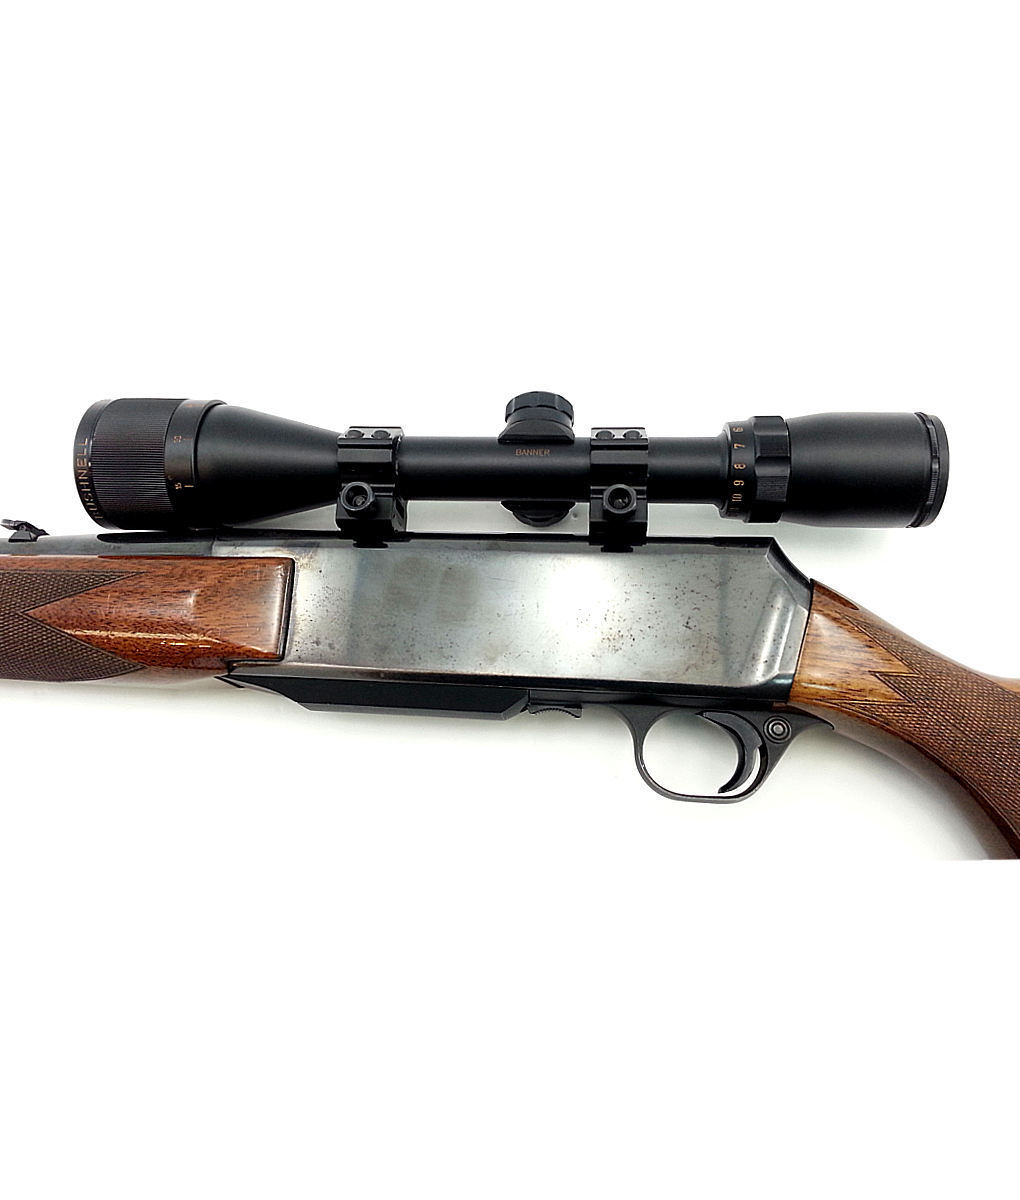 browning bar 30 06 sprg semi automatic rifle used doctor deals